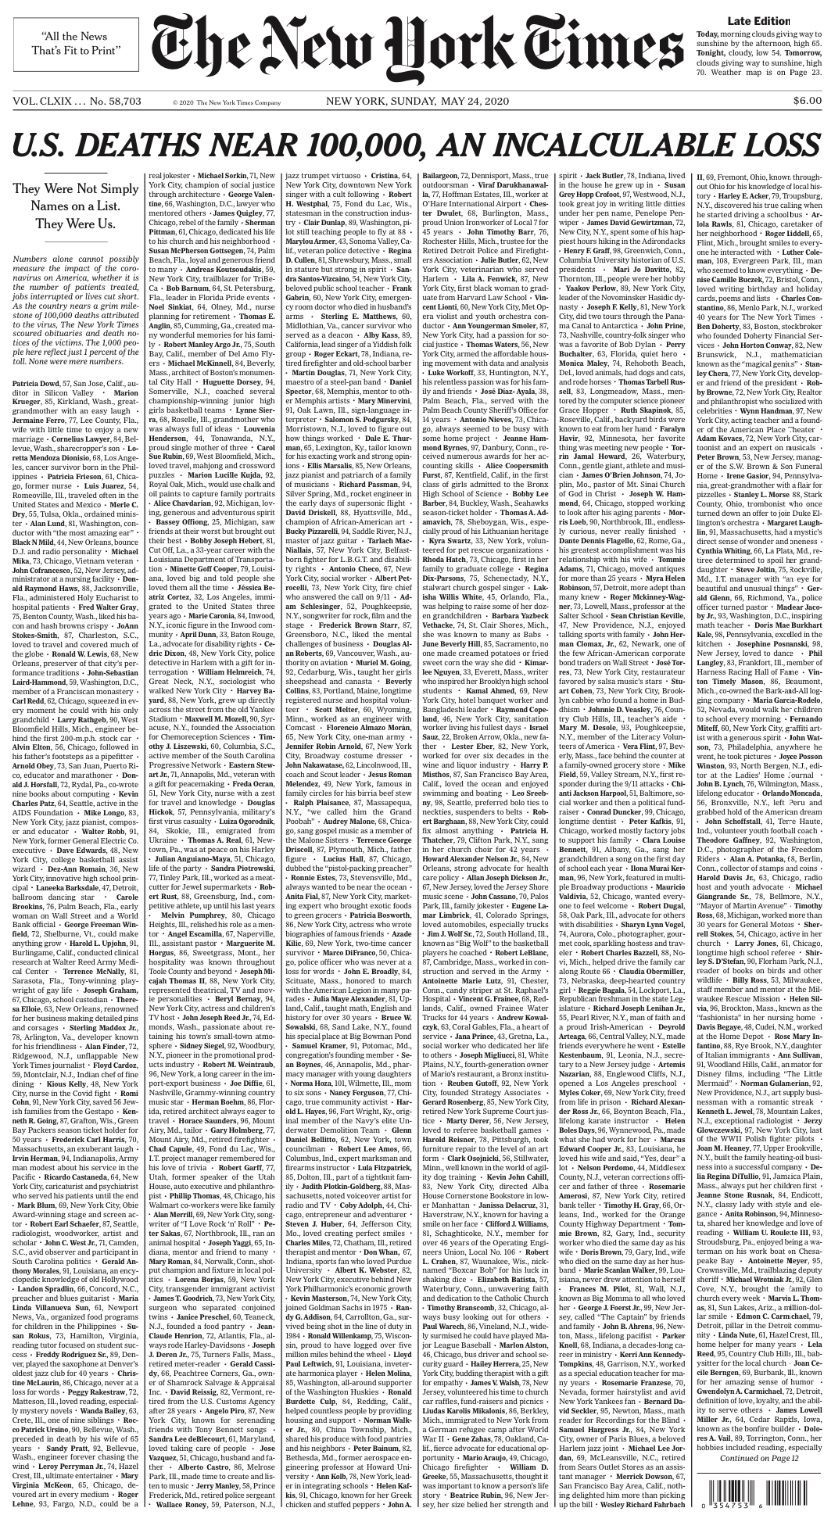 New York Times front page honors 1,000 Covid-19 victims - Axios